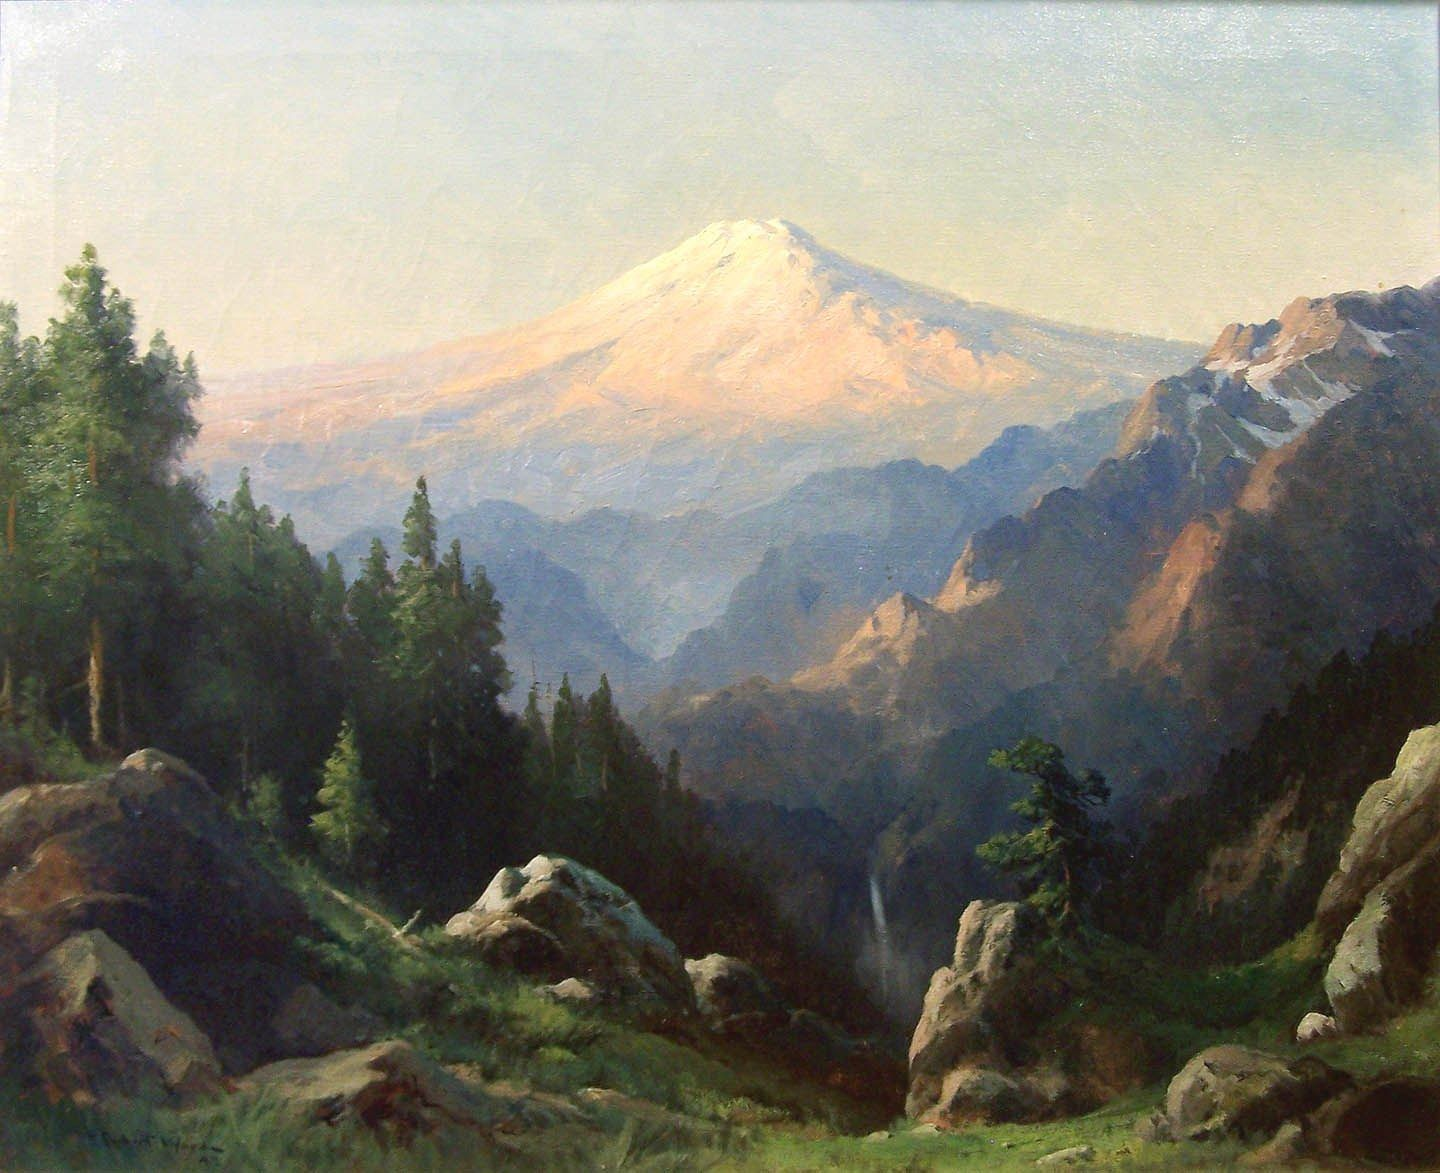 Robert Wood Mt. Ranier at Sunset